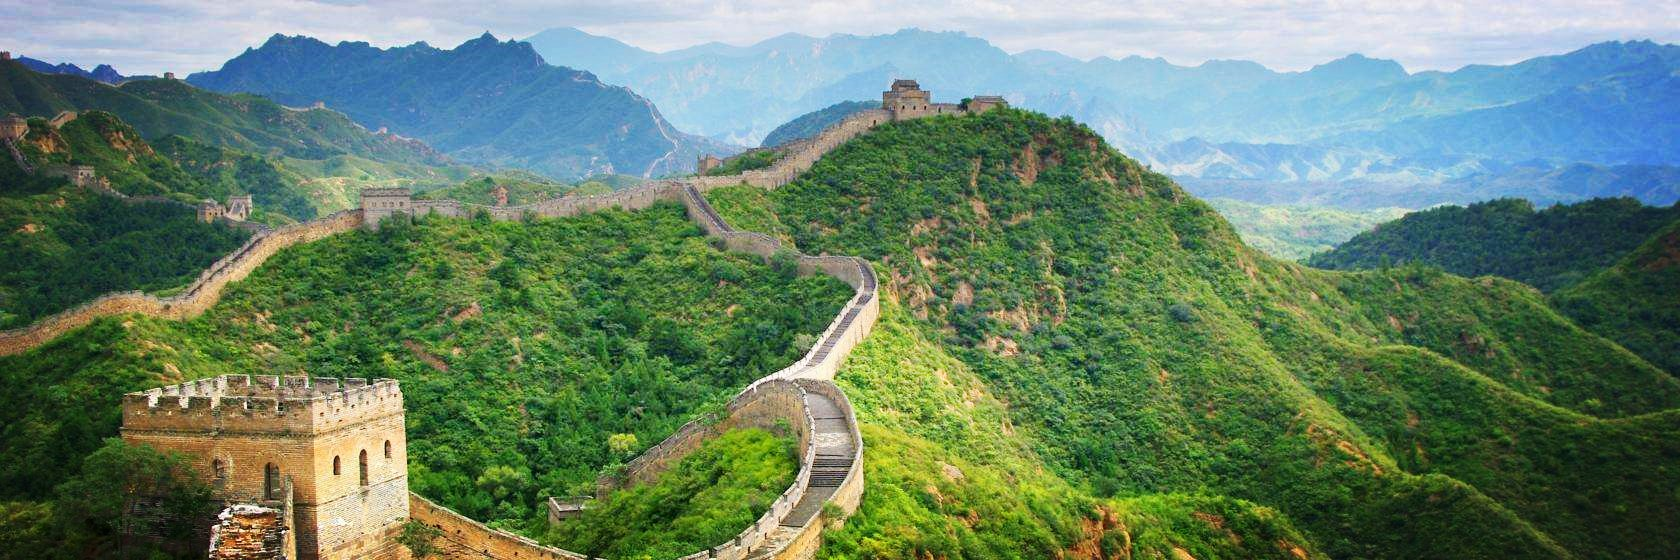 Xian to Beijing 5 Day Private Tour - Tour